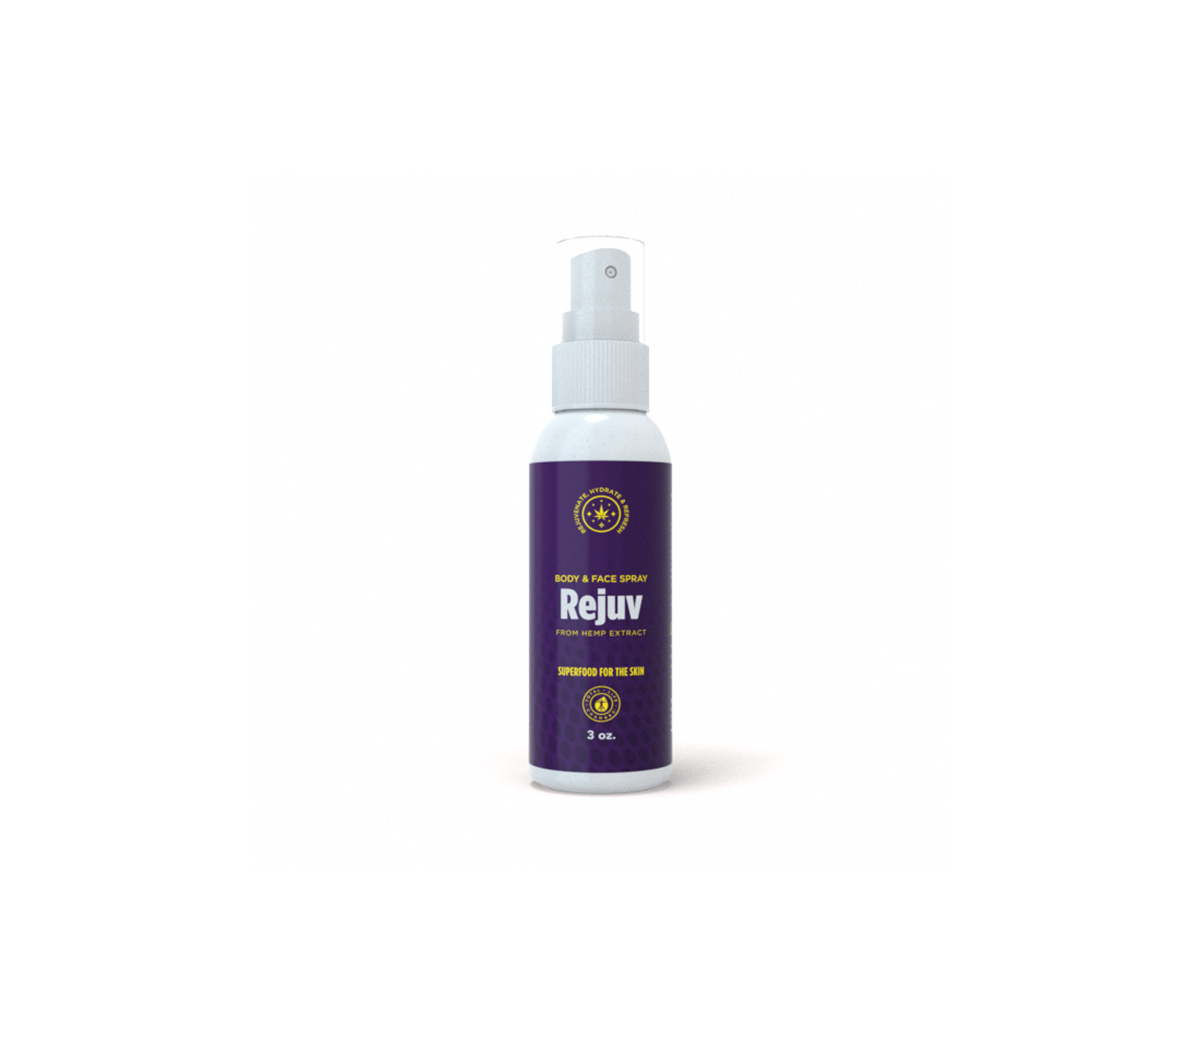 Rejuv Body and Face Spray - $59.95 USD